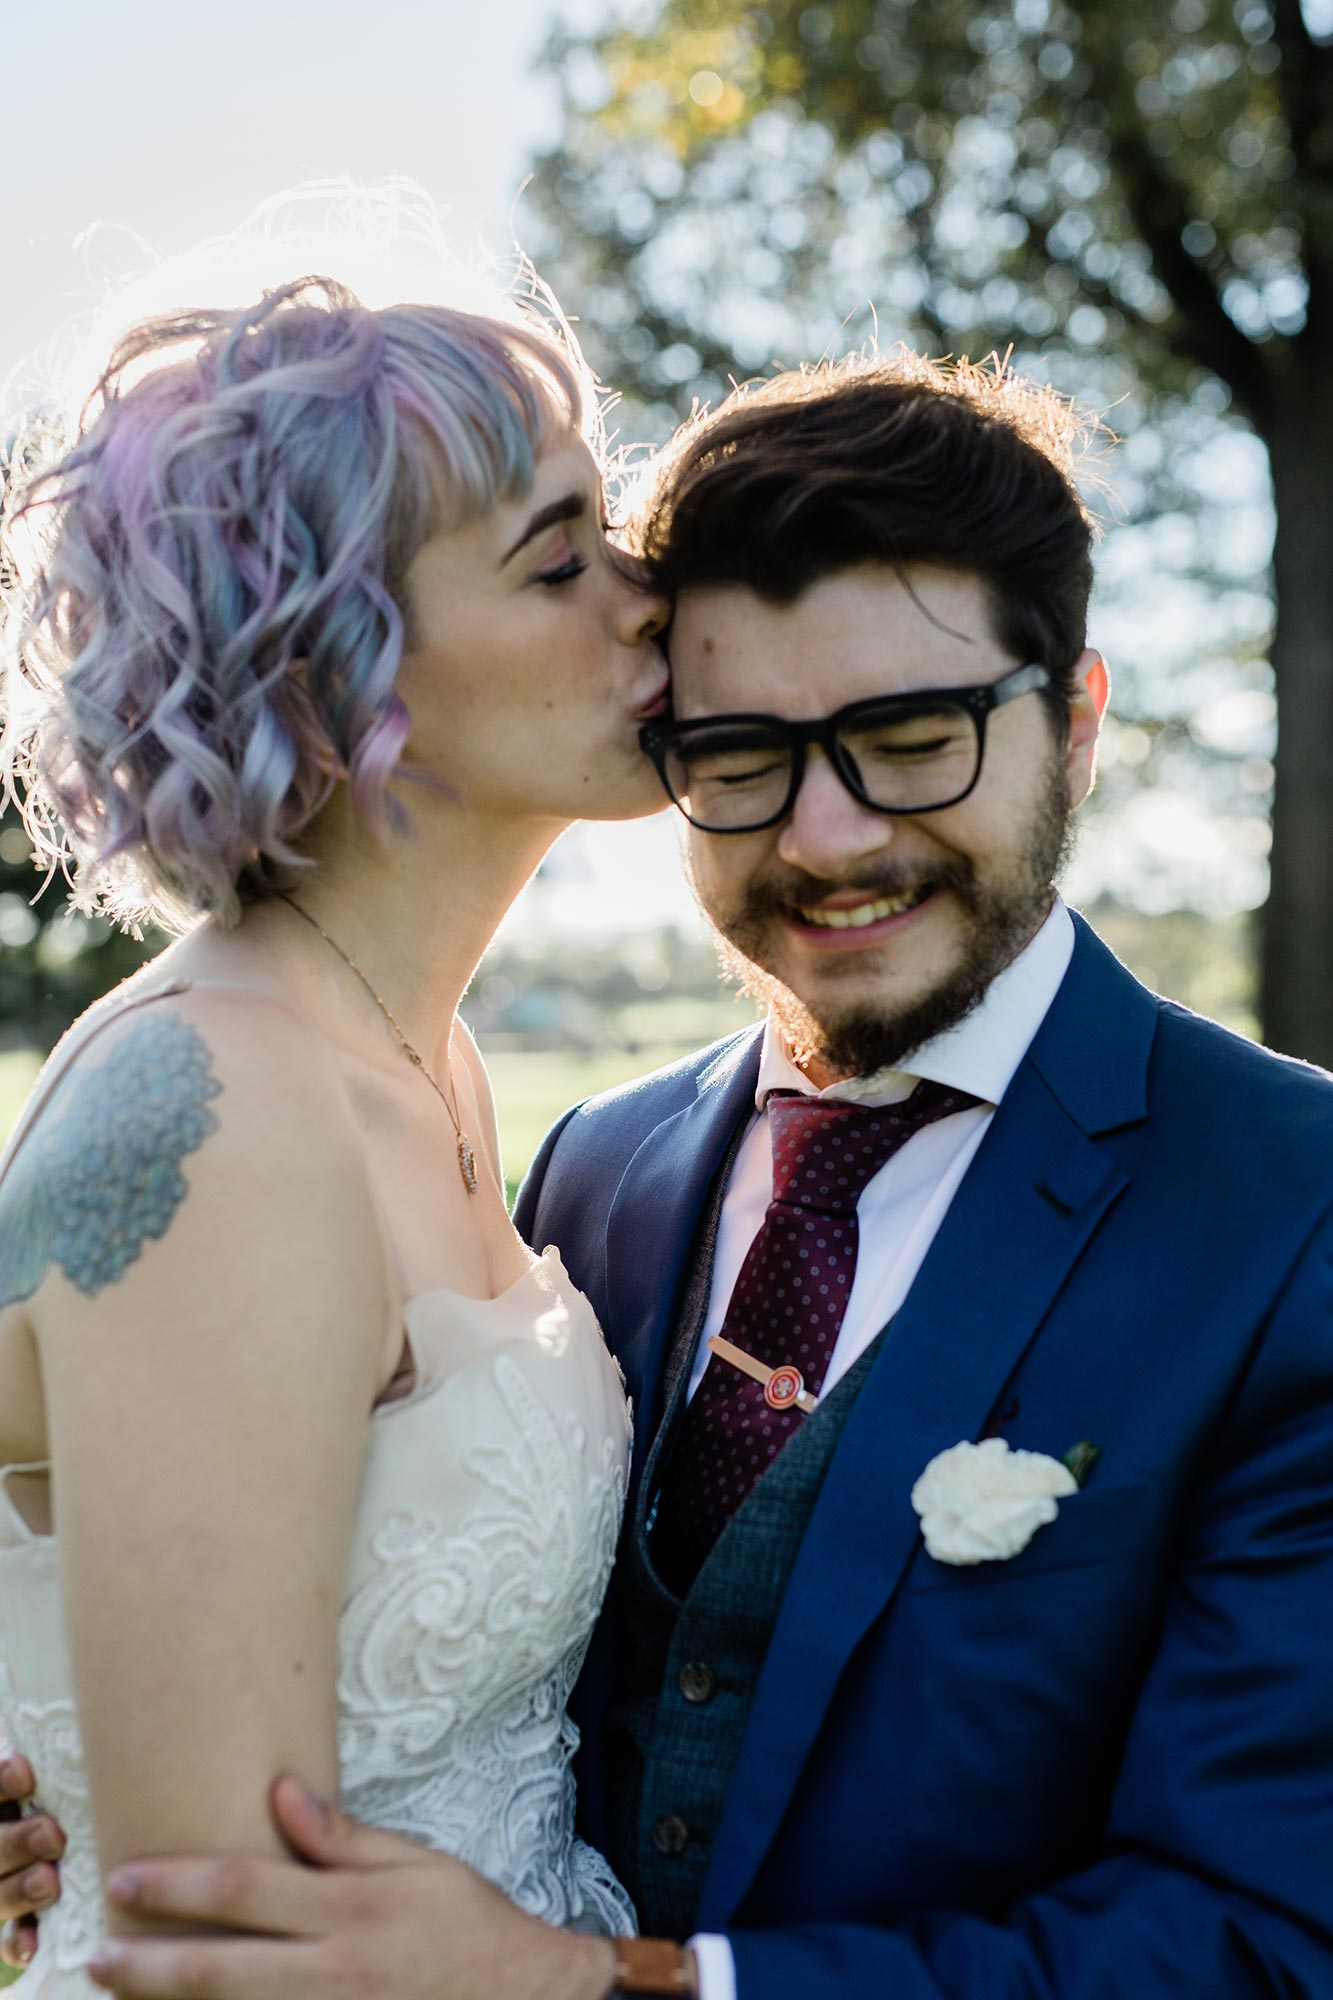 Chic Queer Wedding in West Chester Pennsylvania showing portrait of couple Judson Rappaport Photography